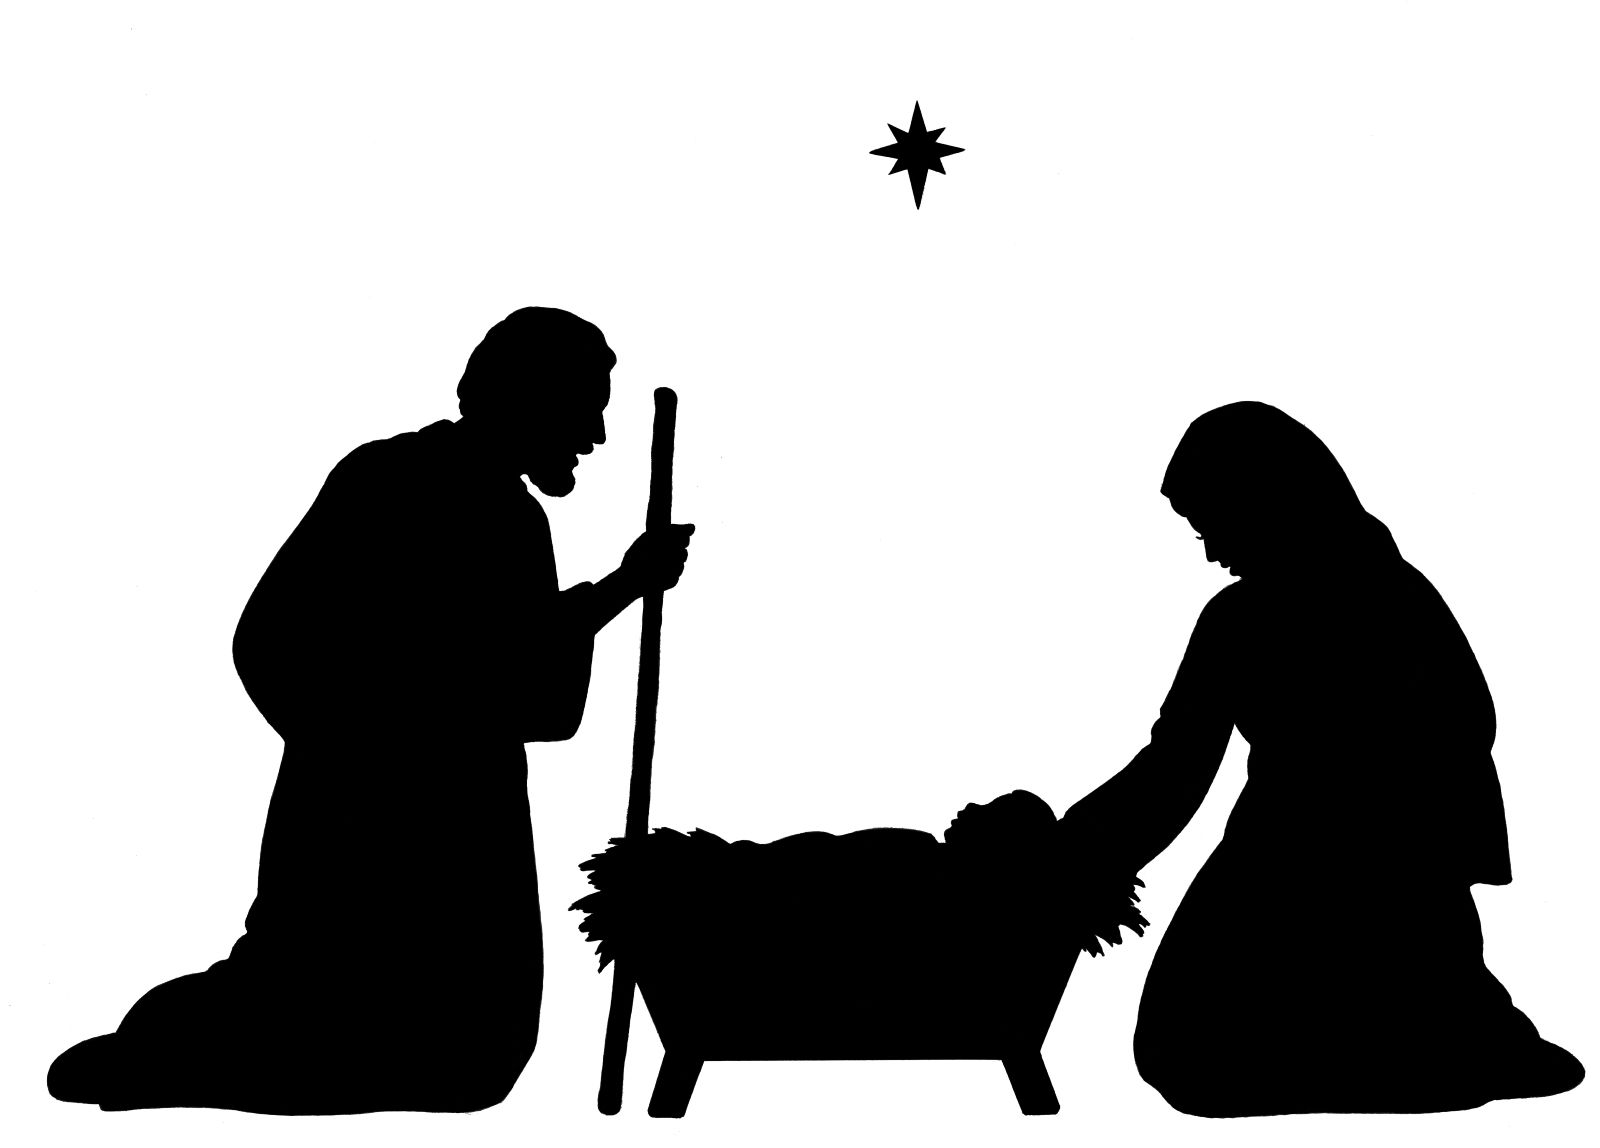 nativity clipart silhouette at getdrawings com free for personal rh getdrawings com nativity clipart free printable nativity clipart images